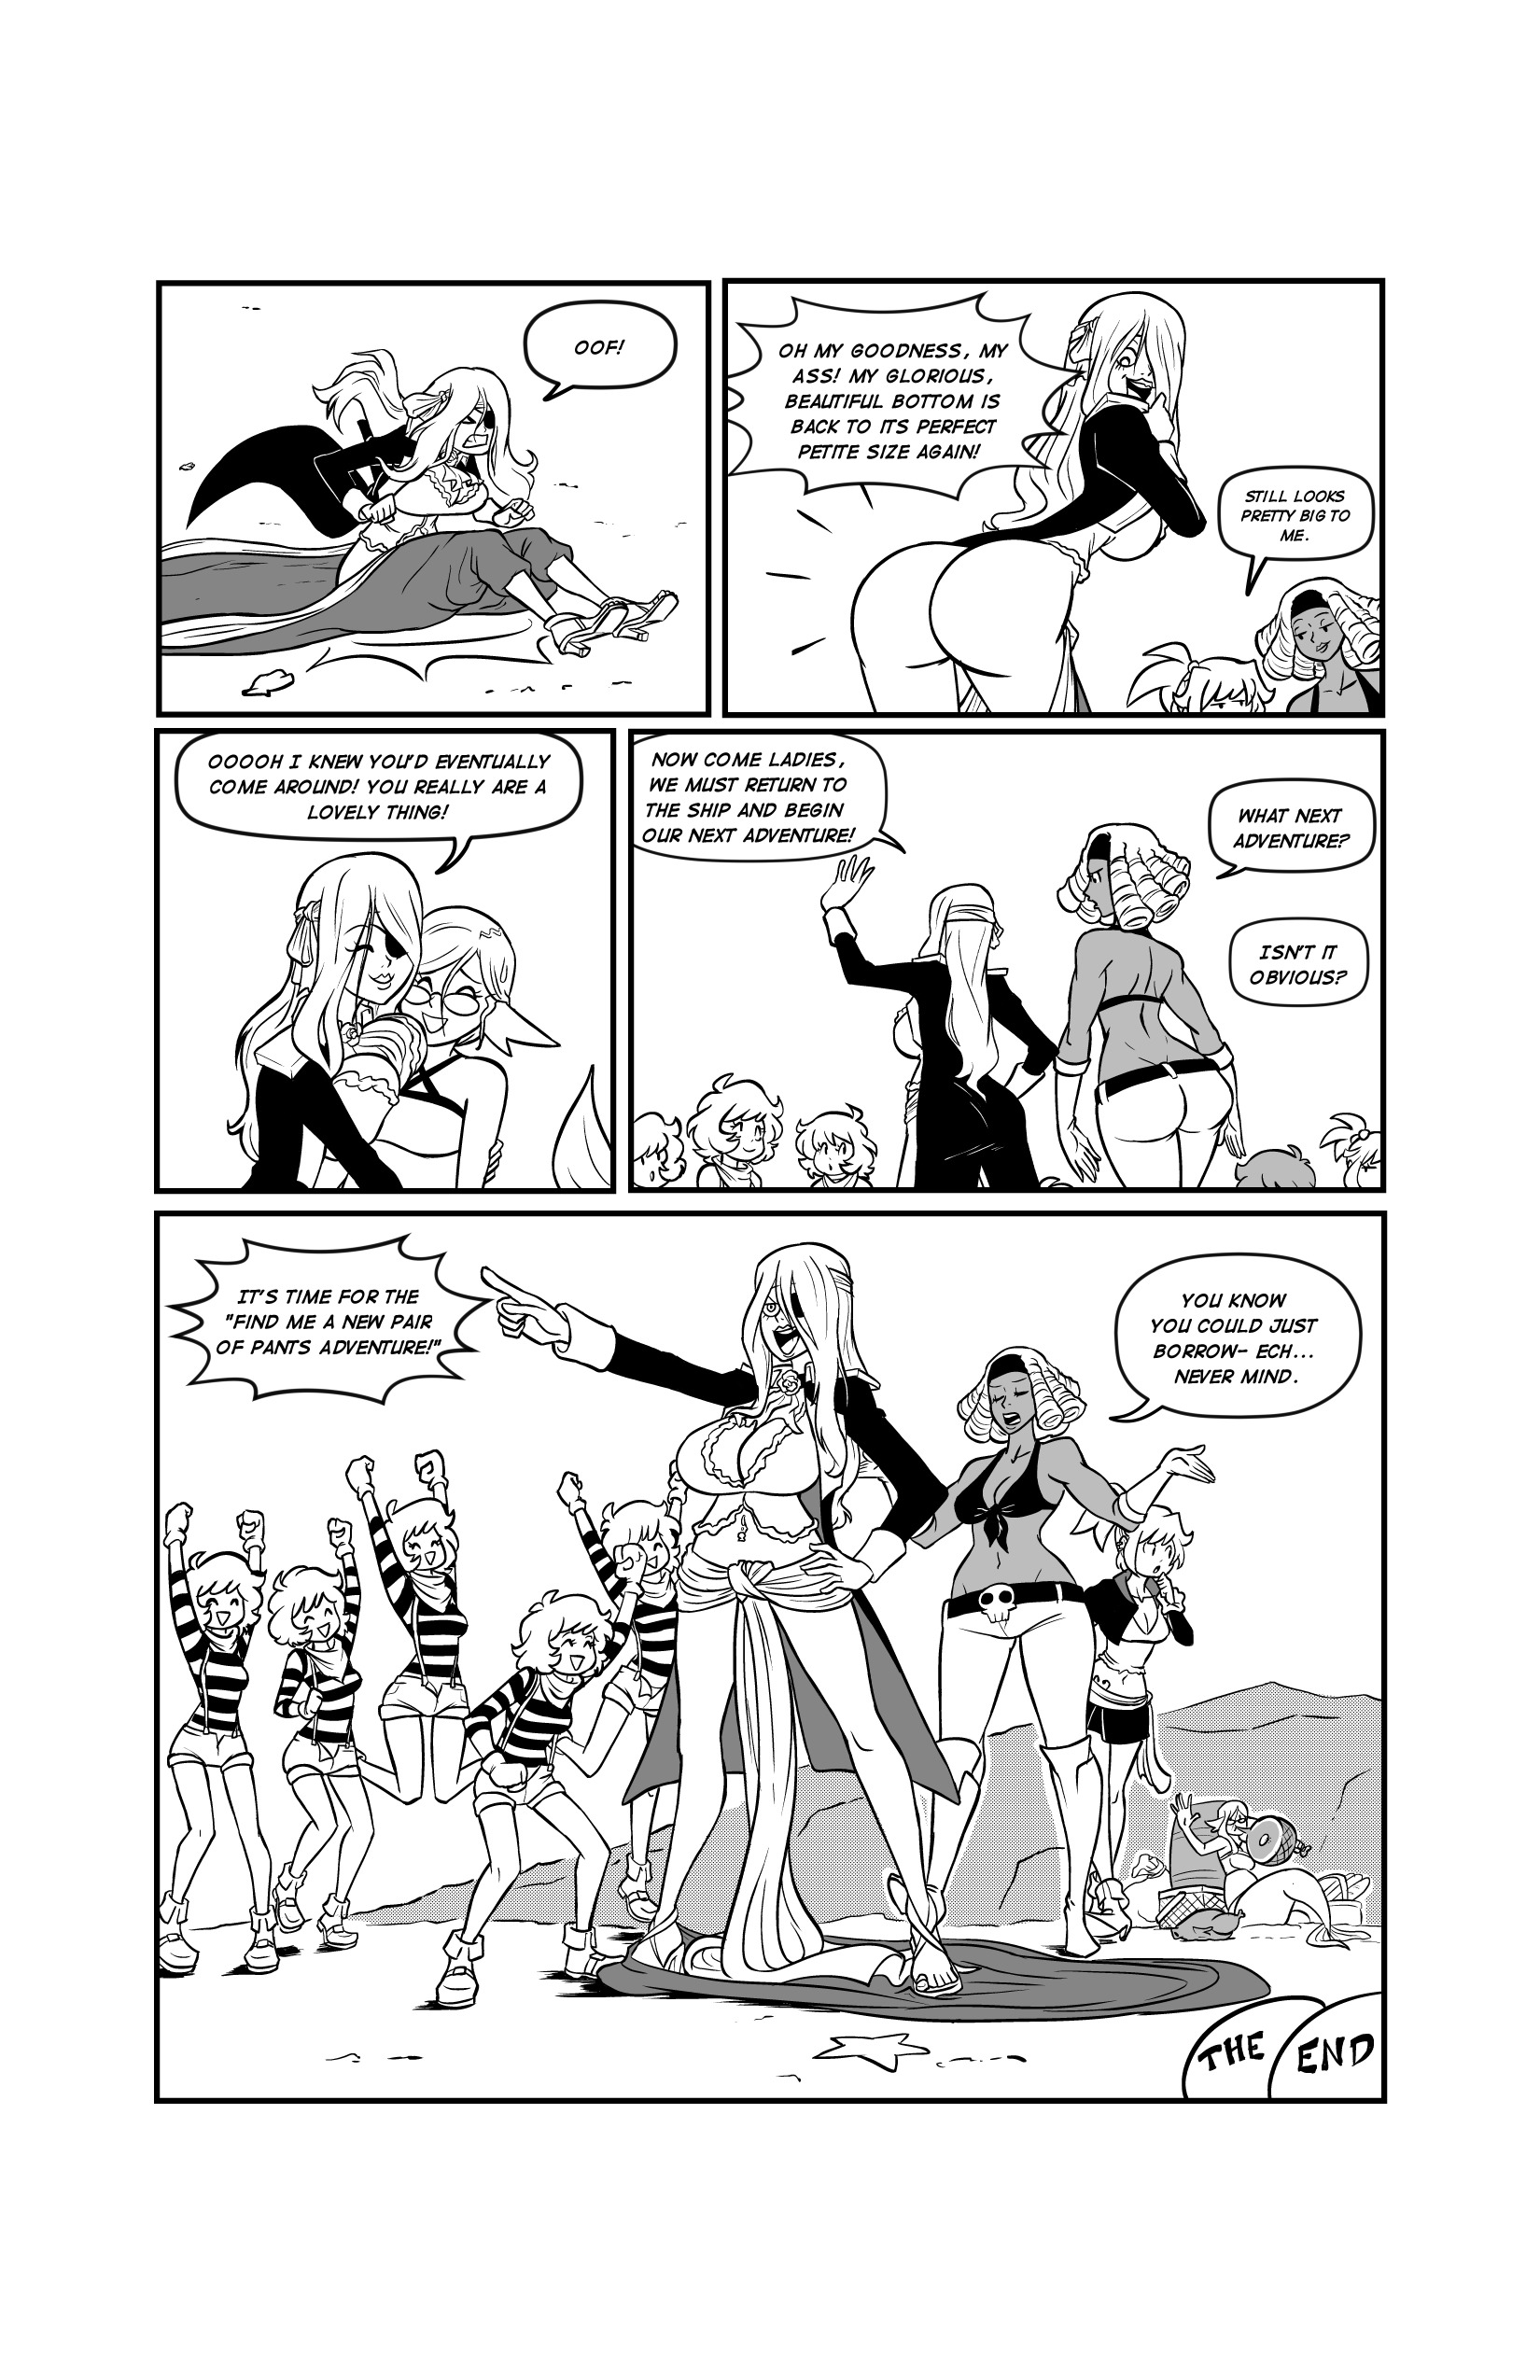 Axel Rosered – Whale of a tail free Cartoon Porn Comic